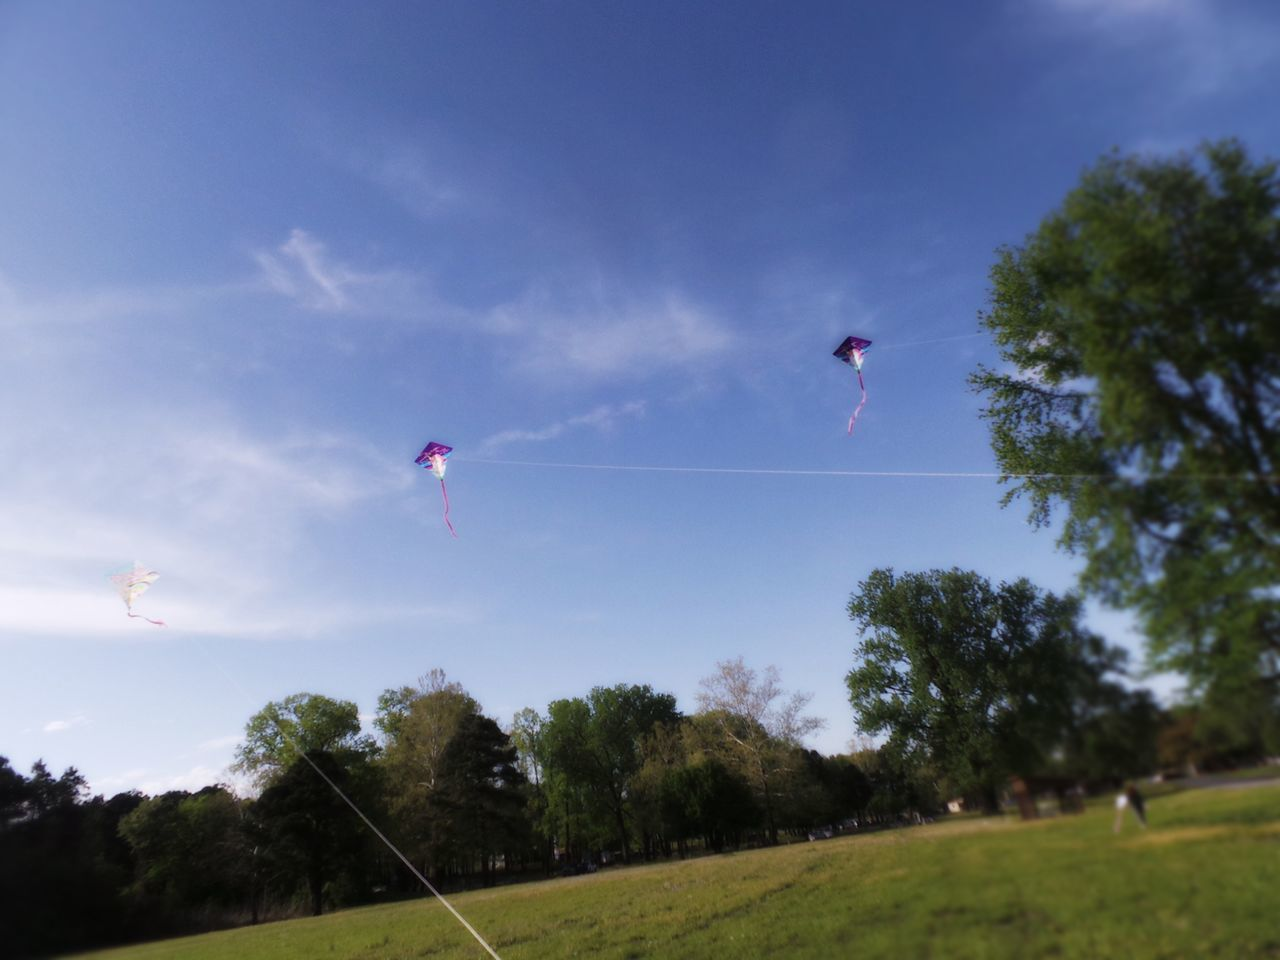 Flying Kites. Summertime Bright Light Clear Sky Summer Day Playing Outdoors Unobstructed Sunlight Playing In A Meadow Kites High In The Air Three Kites